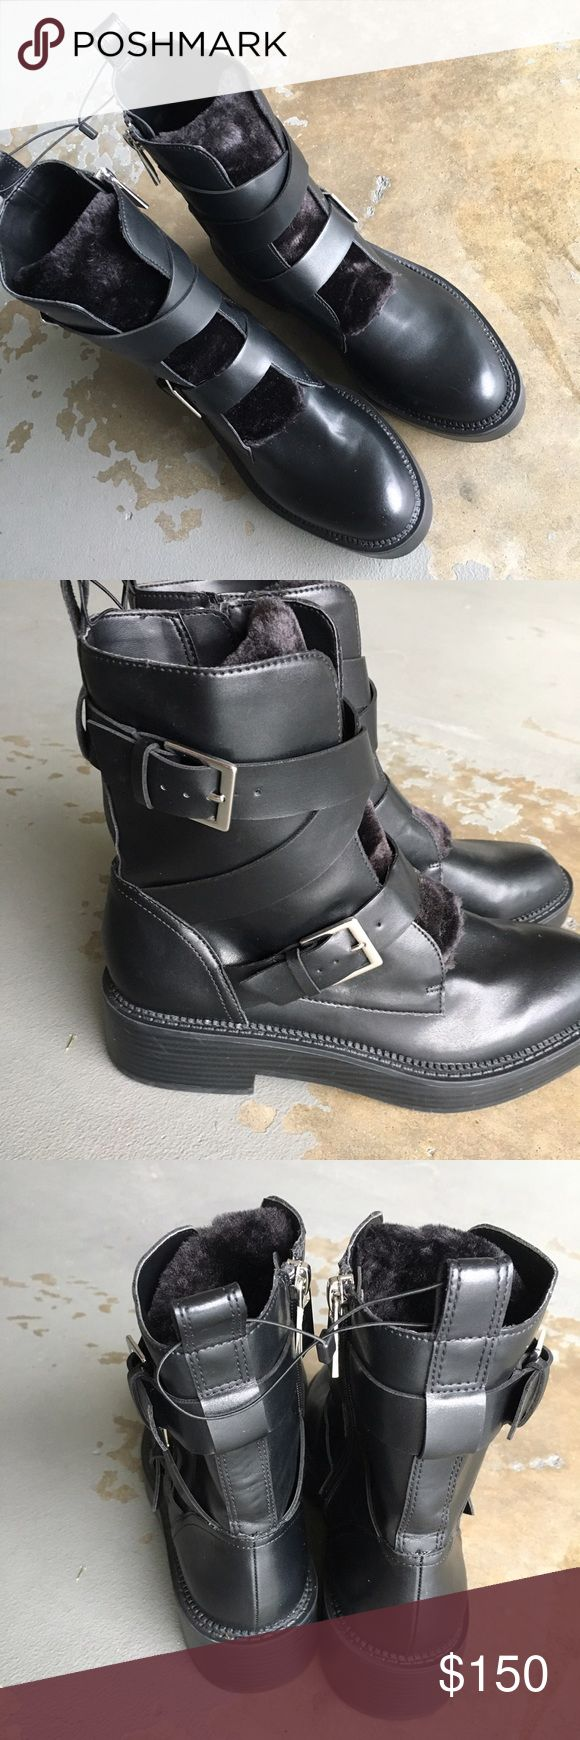 🚨Zara Moto Combat Fur Boots Brand new, never used and still tagged together. Tough but cute boots great for denim or dresses. Size 37 = 7 Zara Shoes Combat & Moto Boots